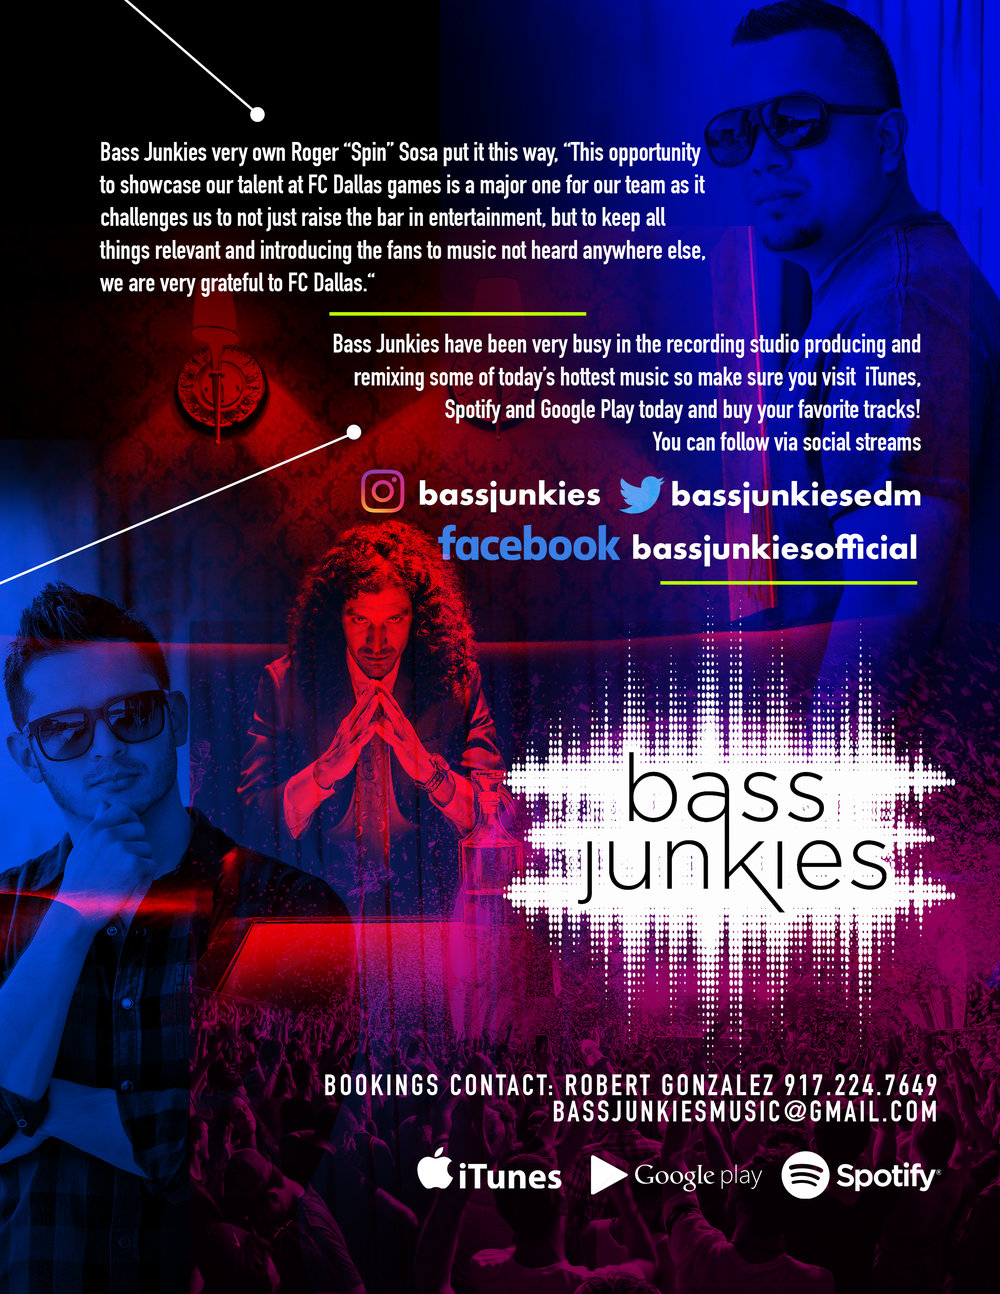 bass-junkies-epk-pg2-2.jpg